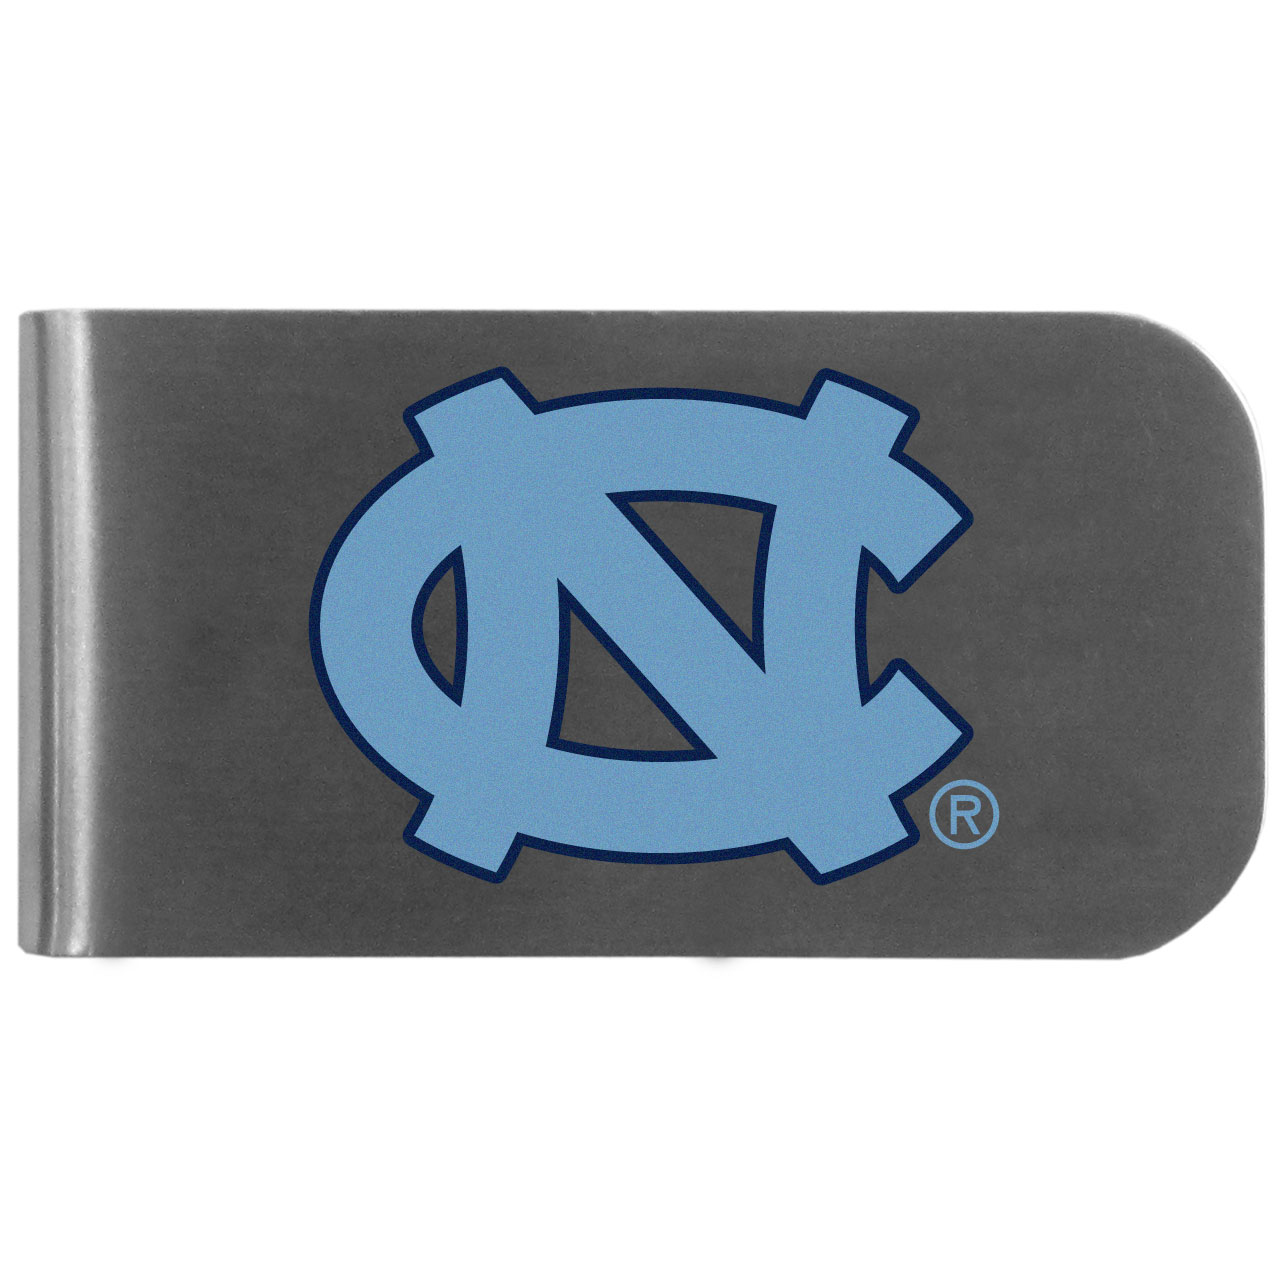 N. Carolina Tar Heels Logo Bottle Opener Money Clip - This unique money clip features a classic, brushed-metal finish with a handy bottle opener feature on the back. The clip has the N. Carolina Tar Heels logo expertly printed on the front of the clip.